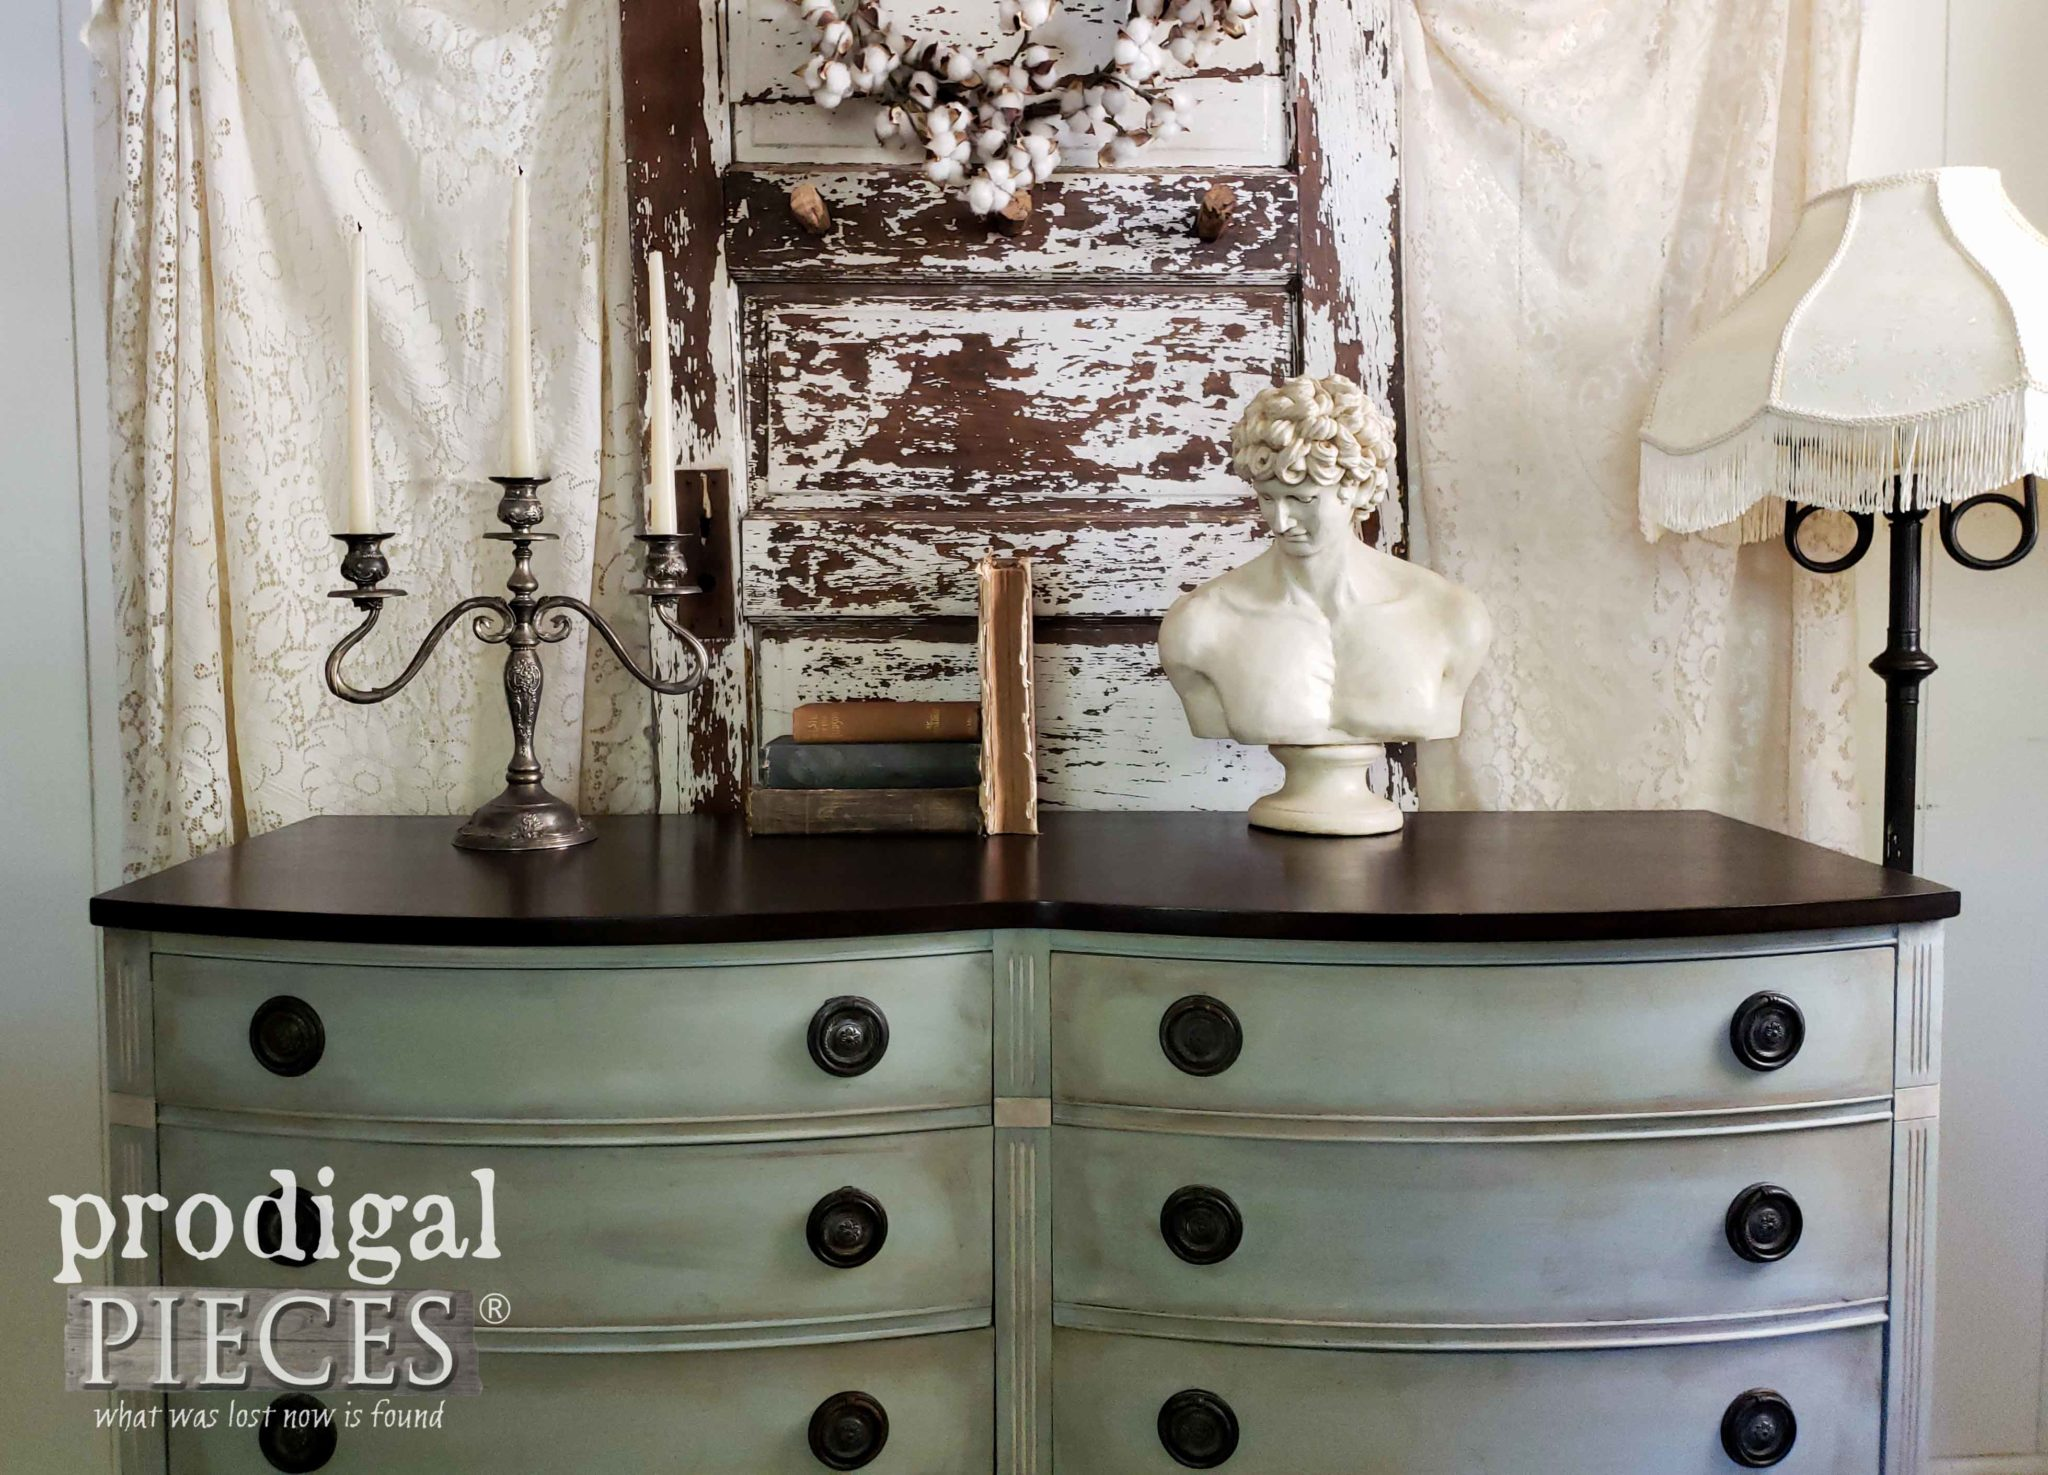 Beautiful Frottage Dresser in Vintage Style by Larissa of Prodigal Pieces | prodigalpieces.com